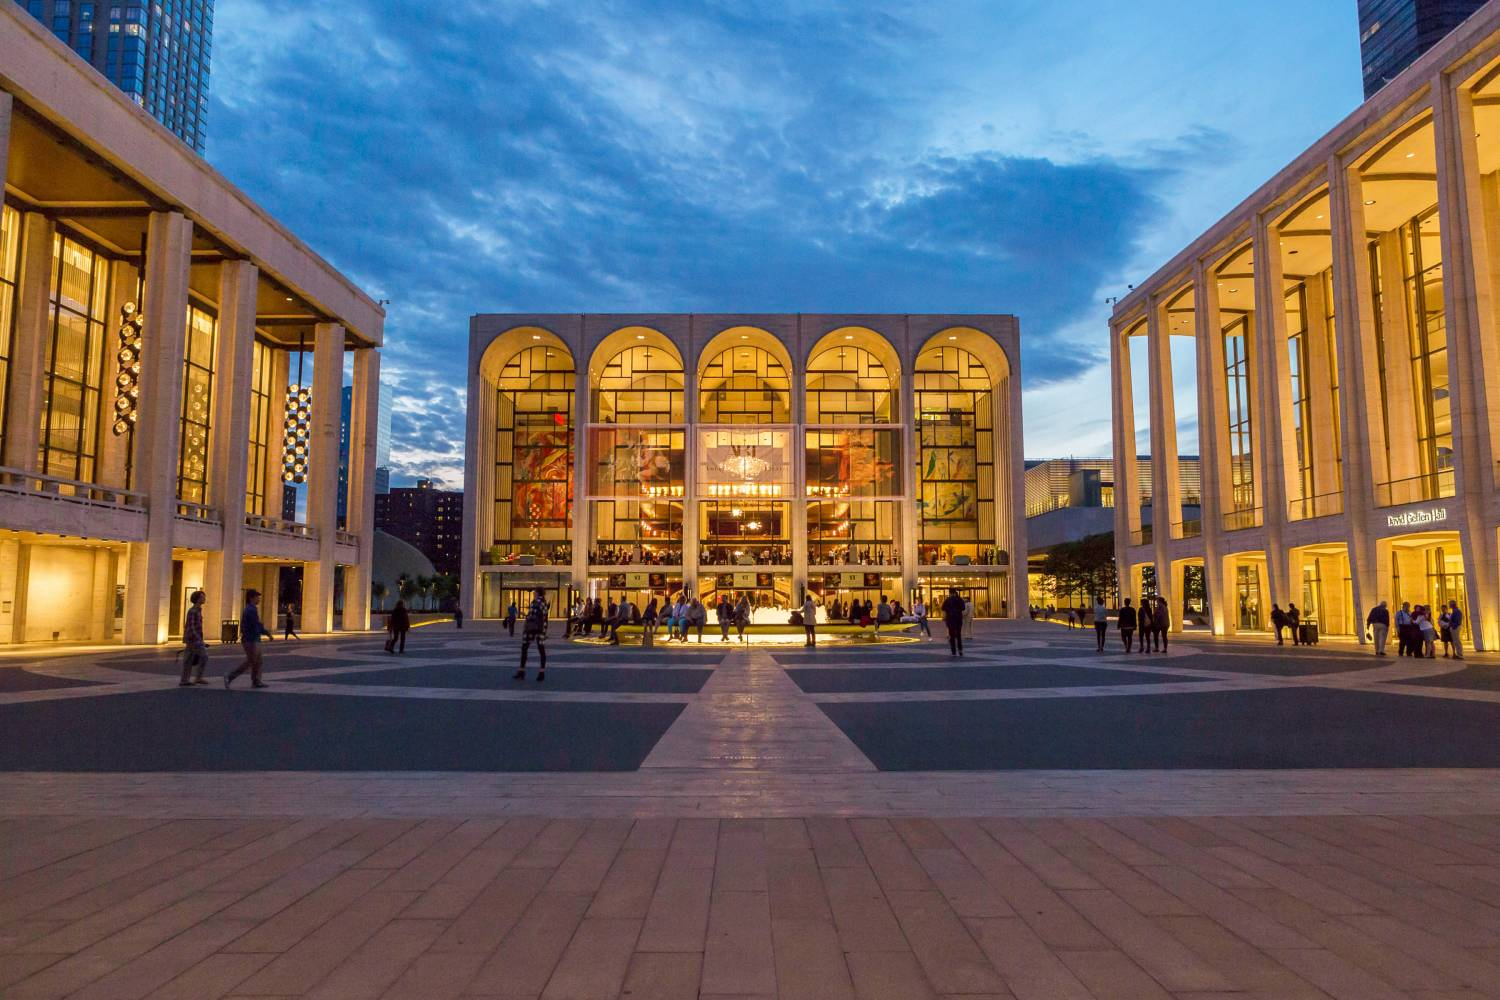 New York City S Top Tourist Attractions Attractions